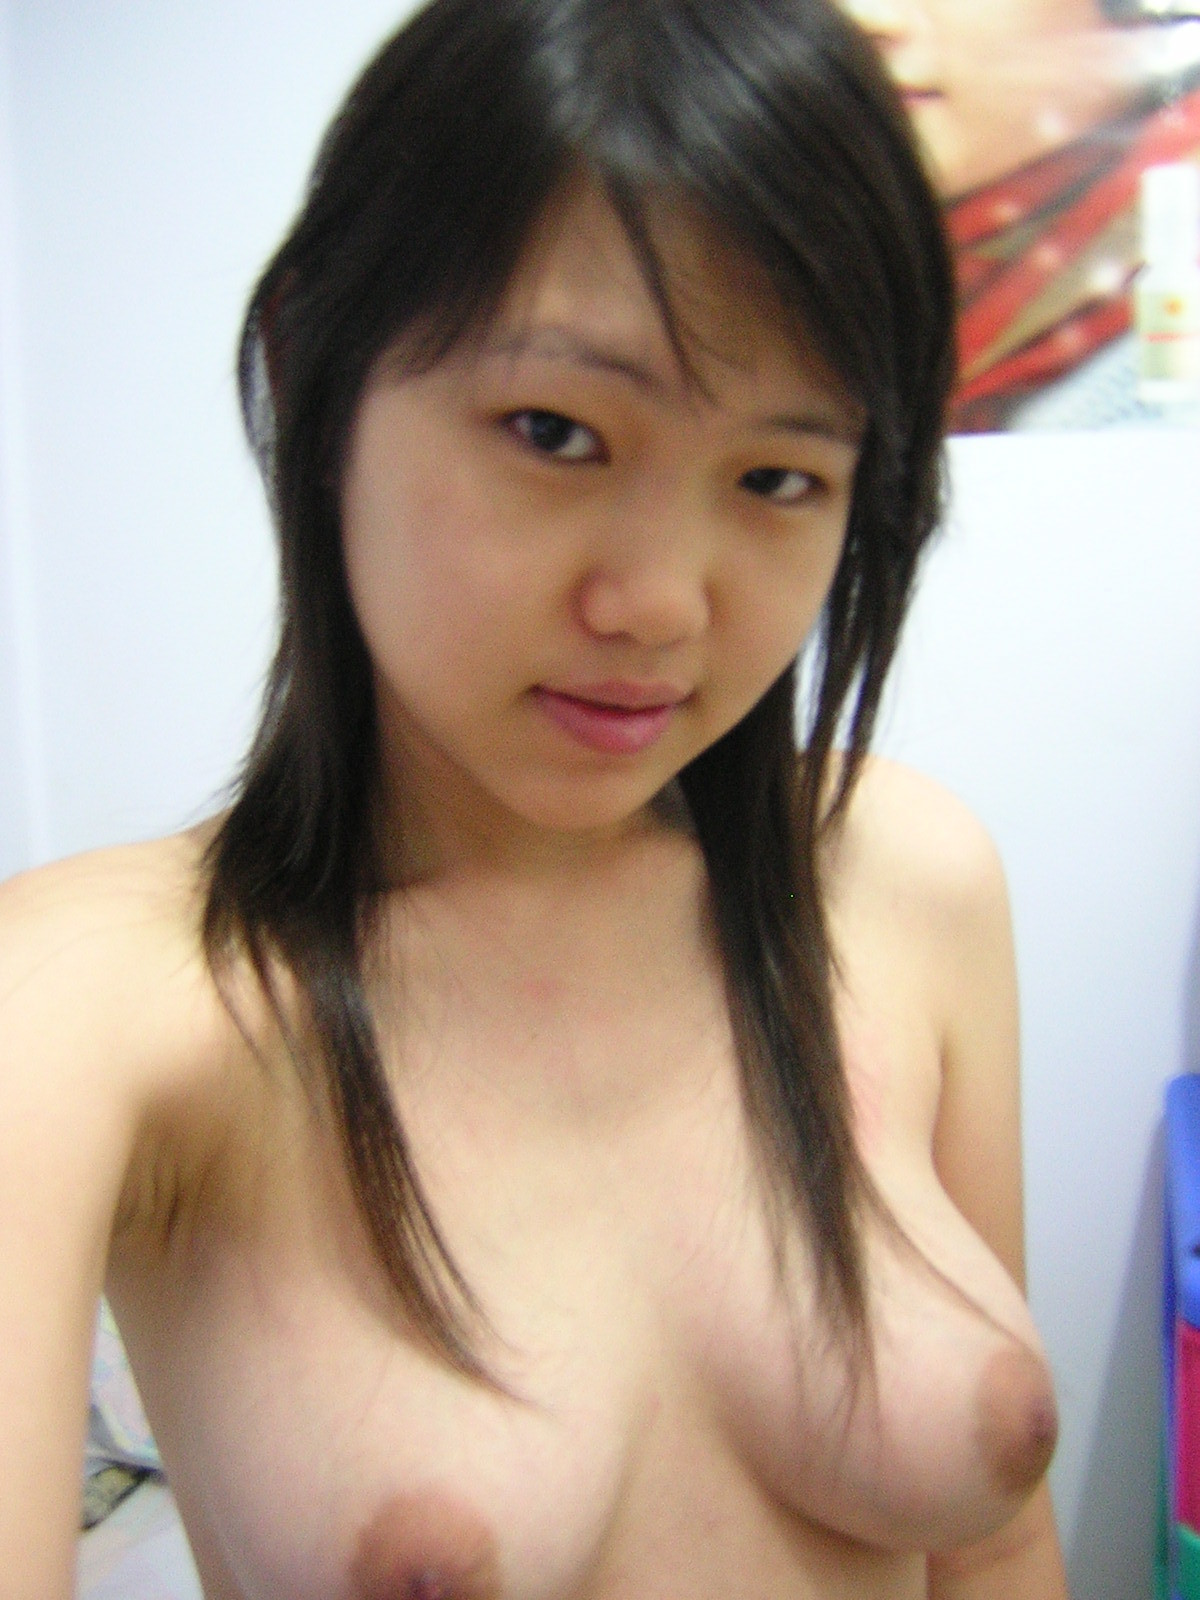 Thought differently, Indonesian beauty girls nude